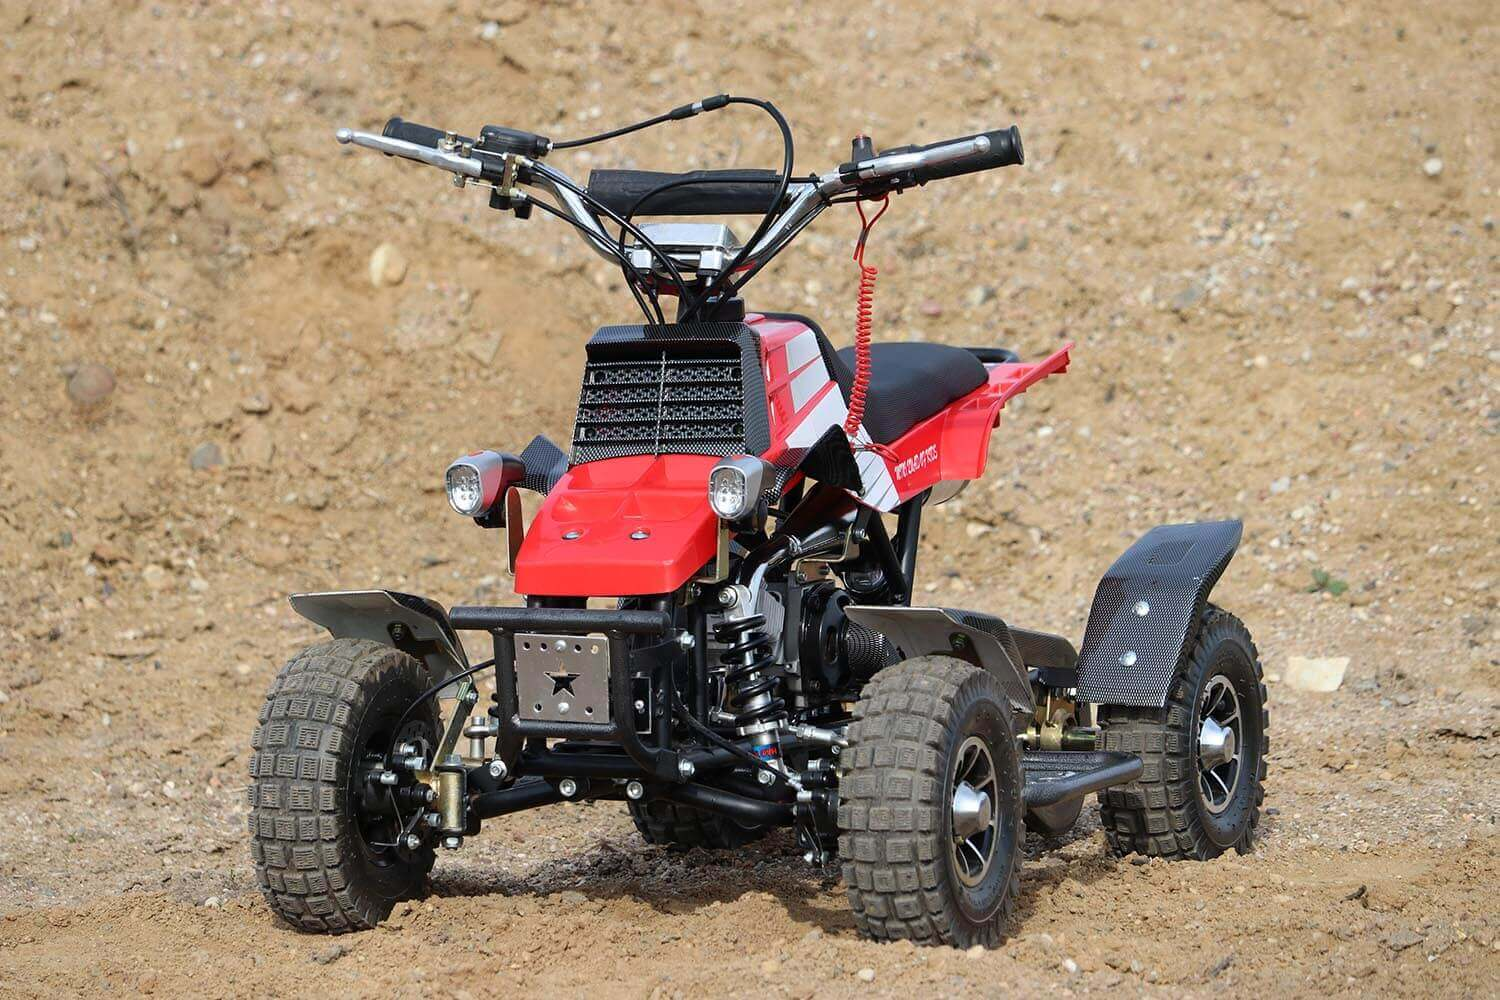 Quadro 49cc, 50cc Mini Yamaha Banshee Quad for Kids from Nitro Motors, Mini Bikes Store 1